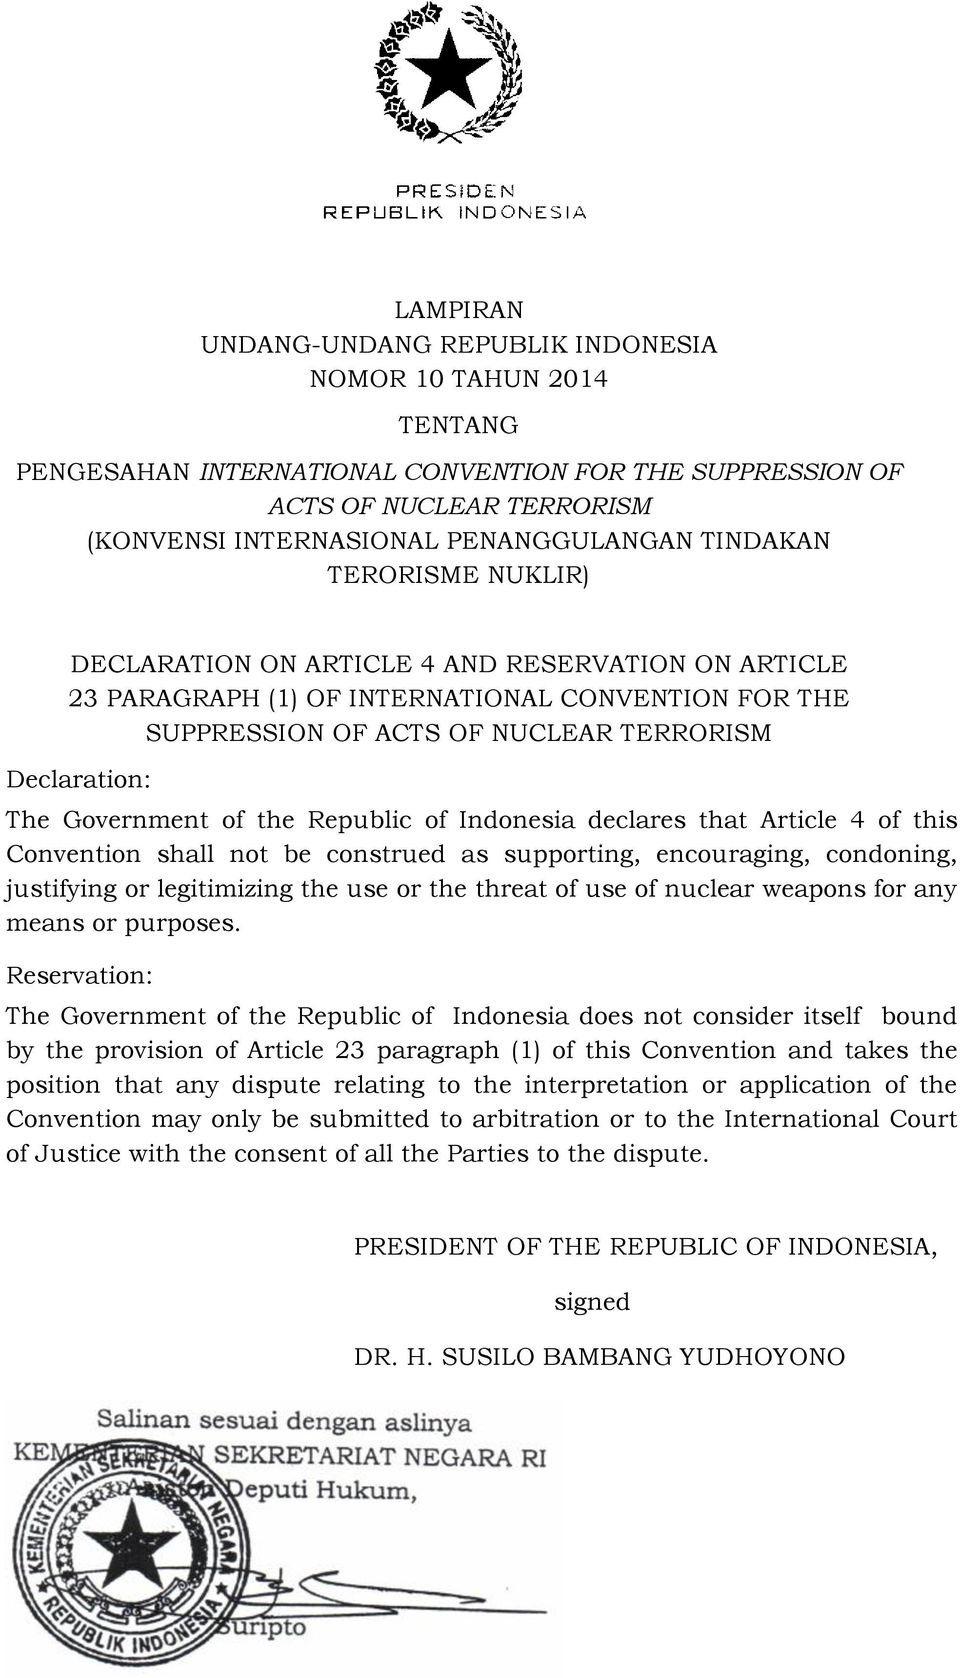 Government of the Republic of Indonesia declares that Article 4 of this Convention shall not be construed as supporting, encouraging, condoning, justifying or legitimizing the use or the threat of